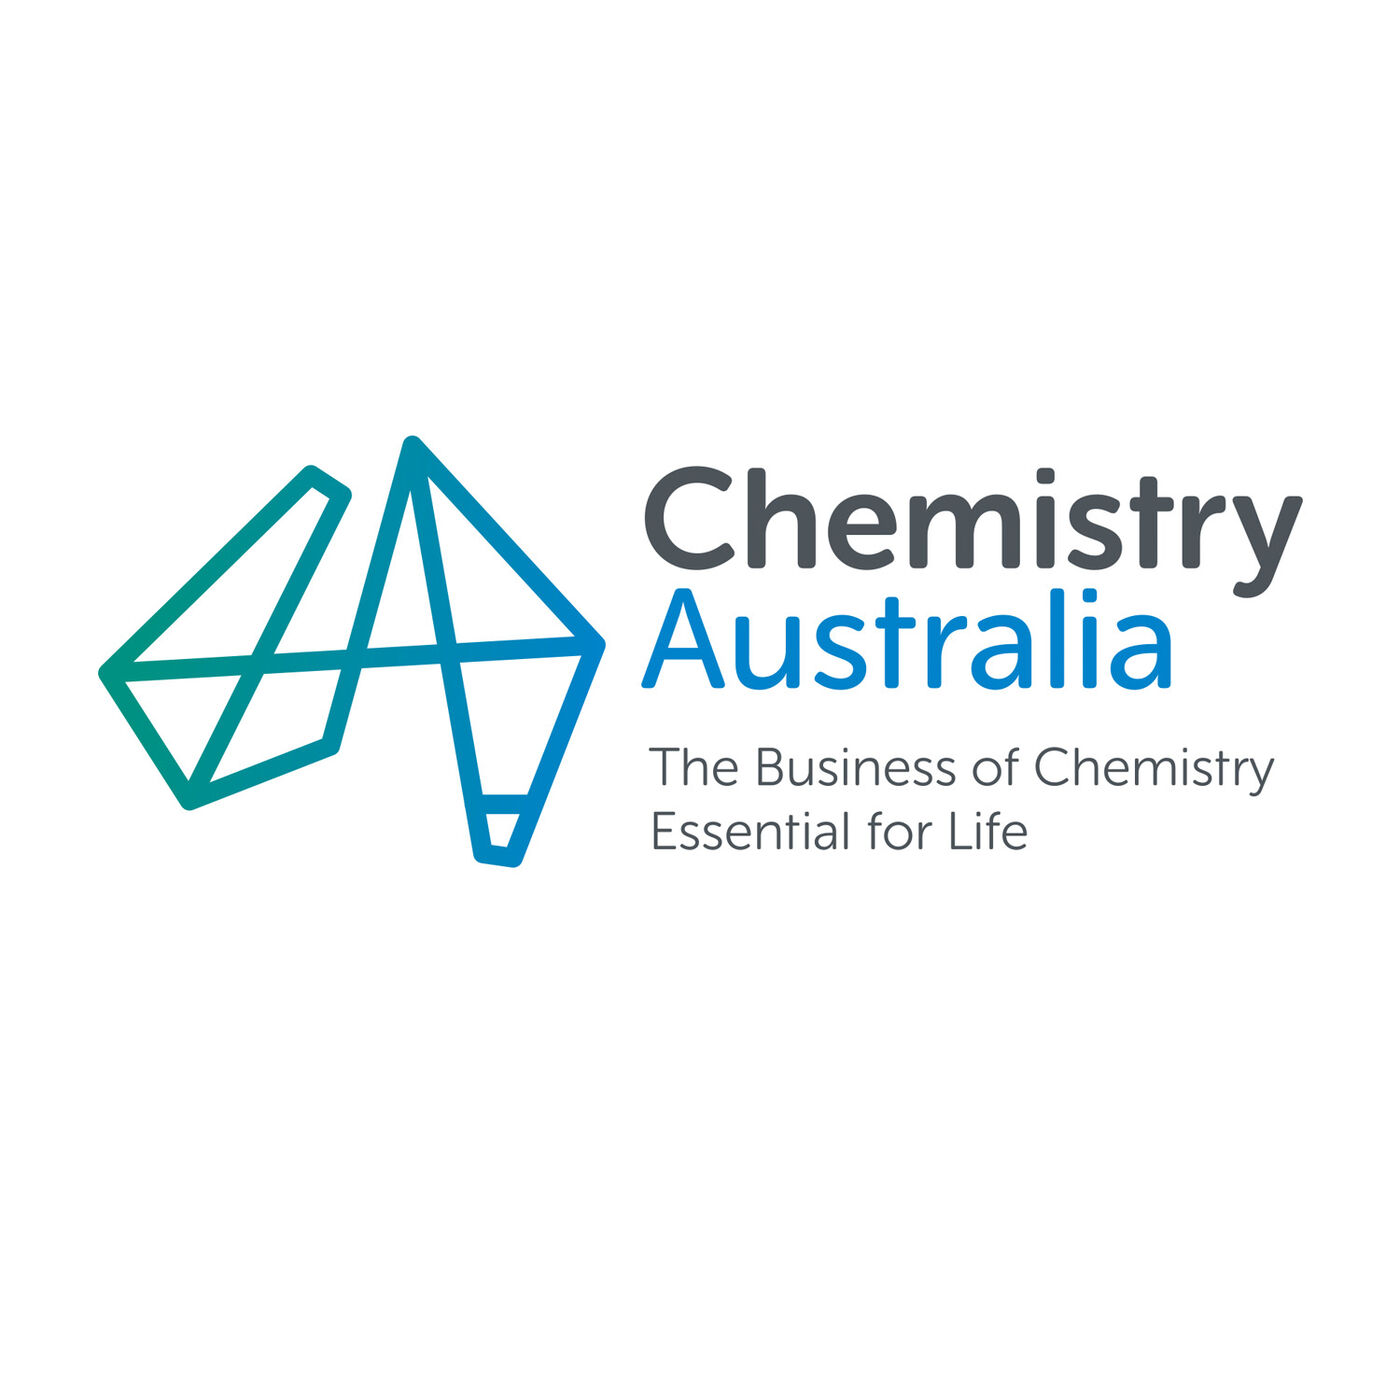 Episode Two - Chemistry and Innovation